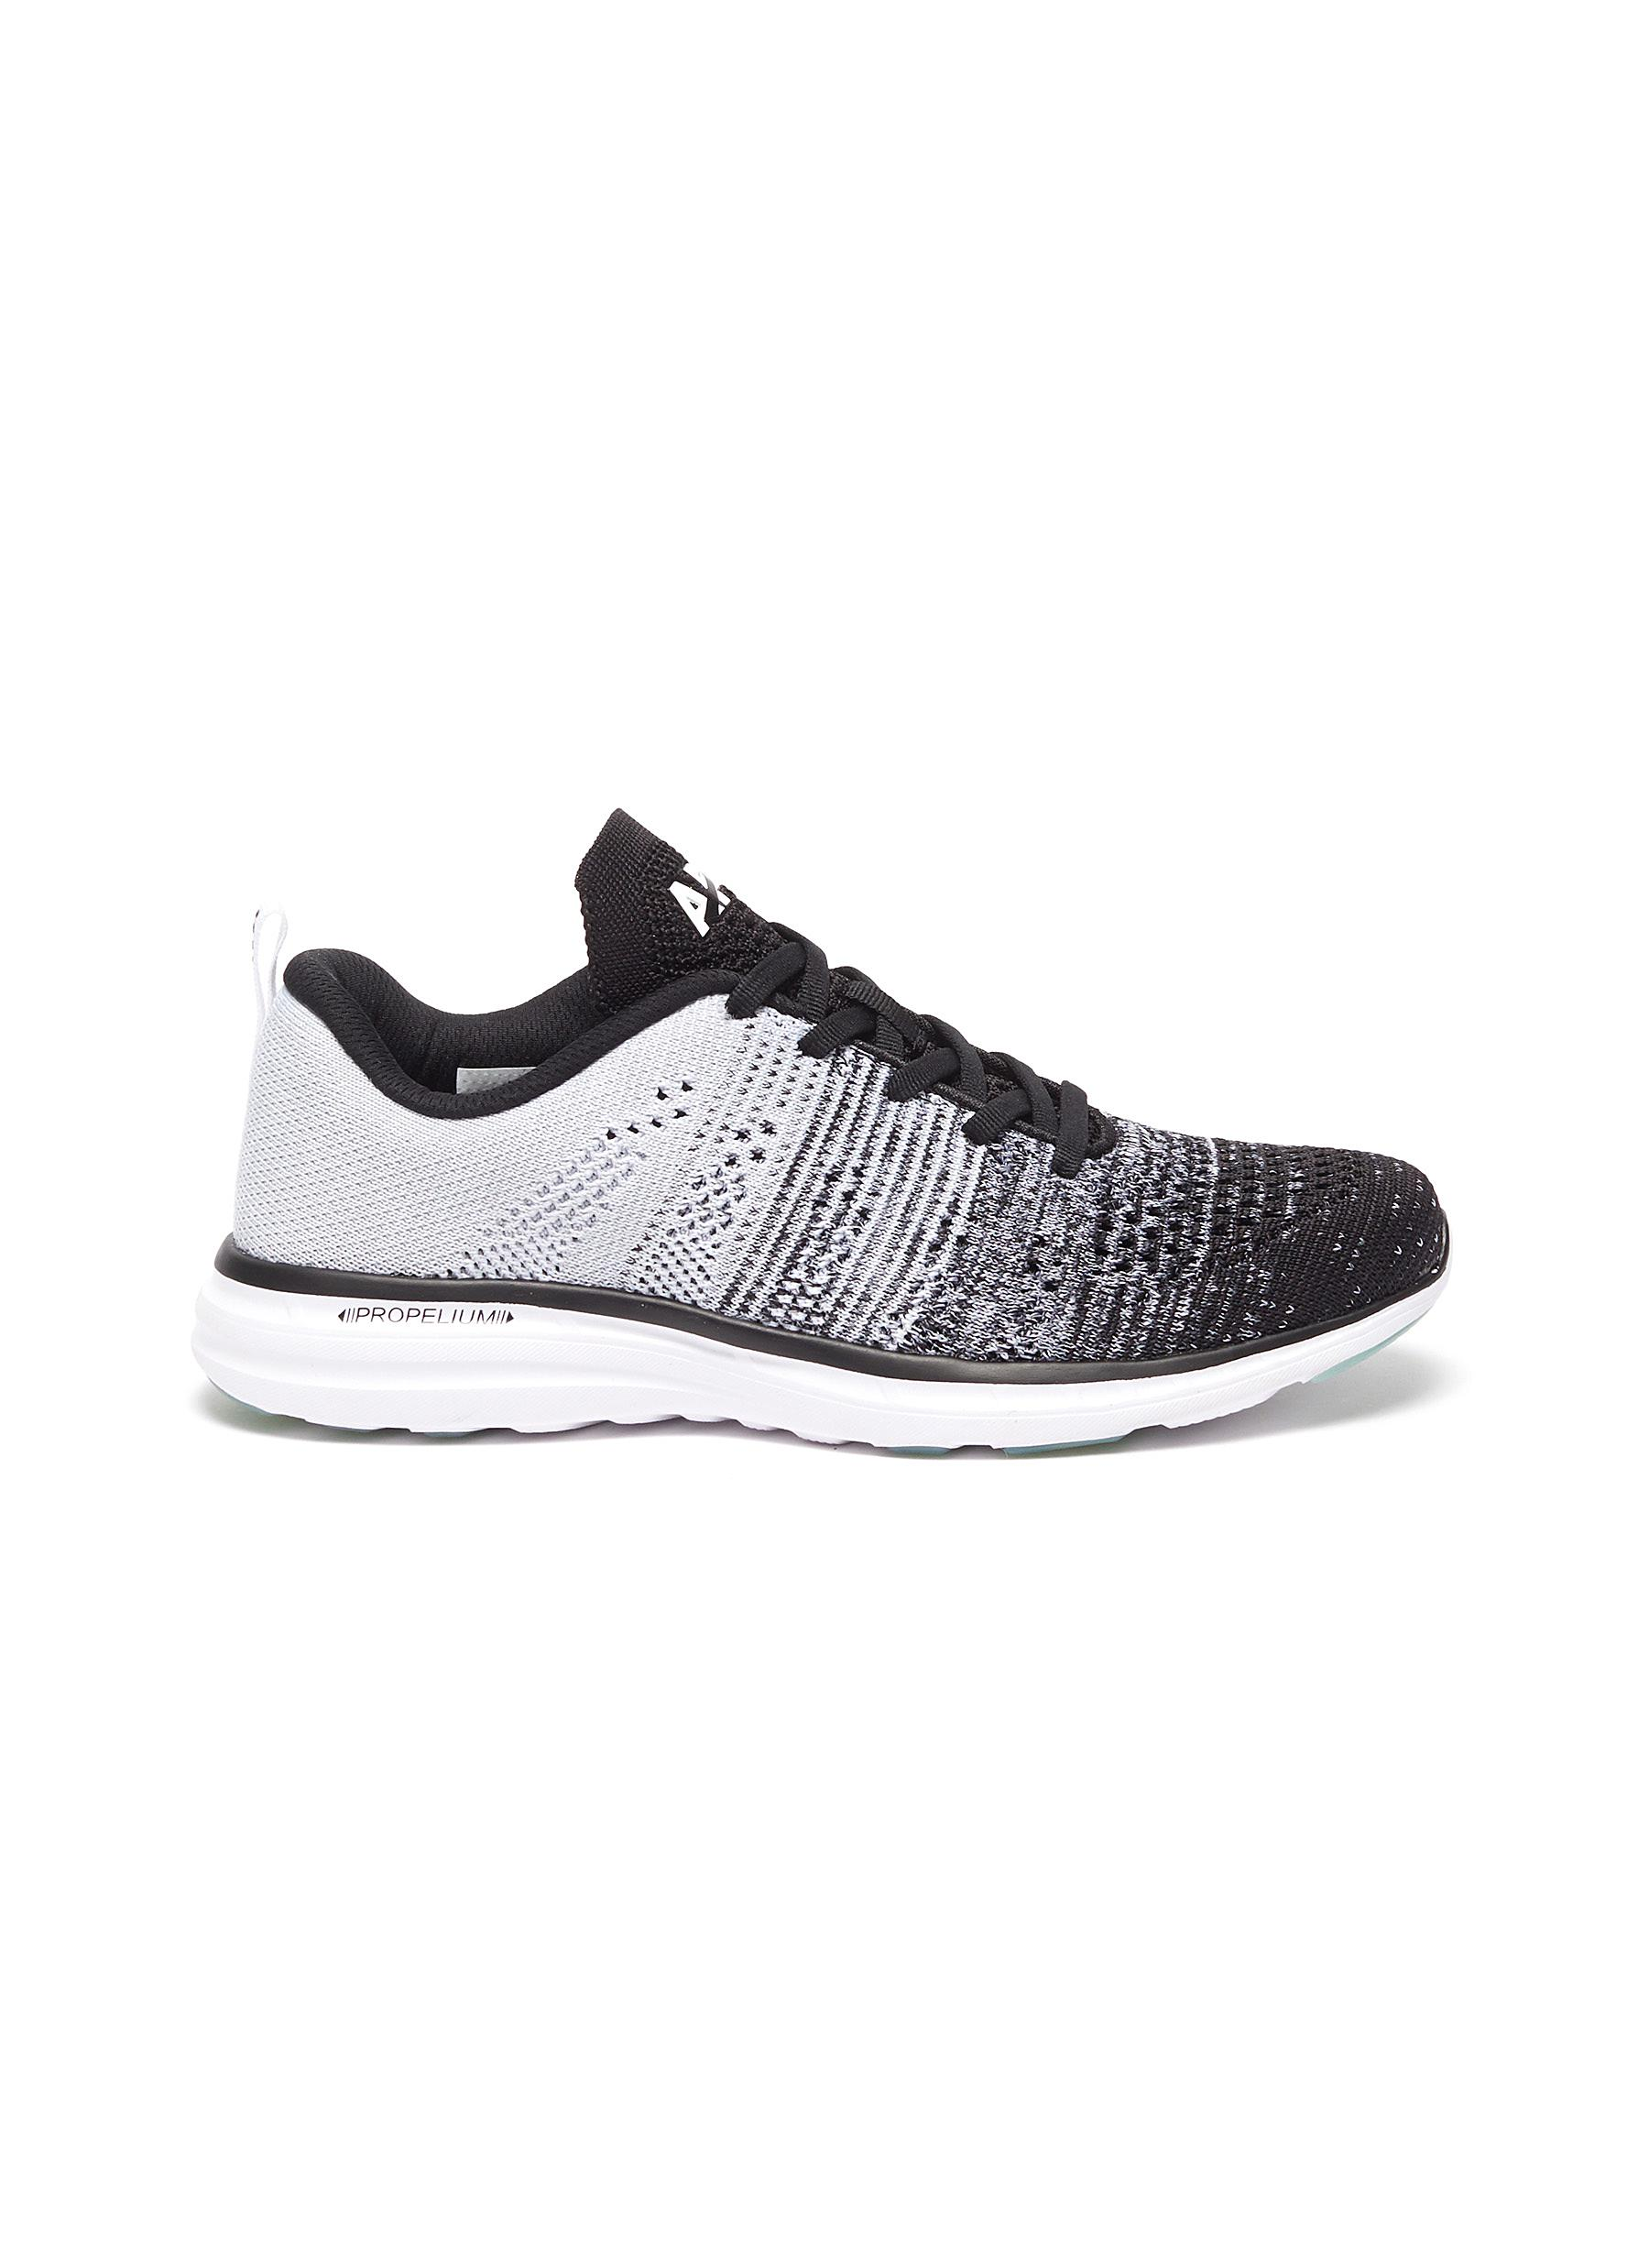 'Techloom Pro' Gradient Knit Upper Lace Up Sneakers